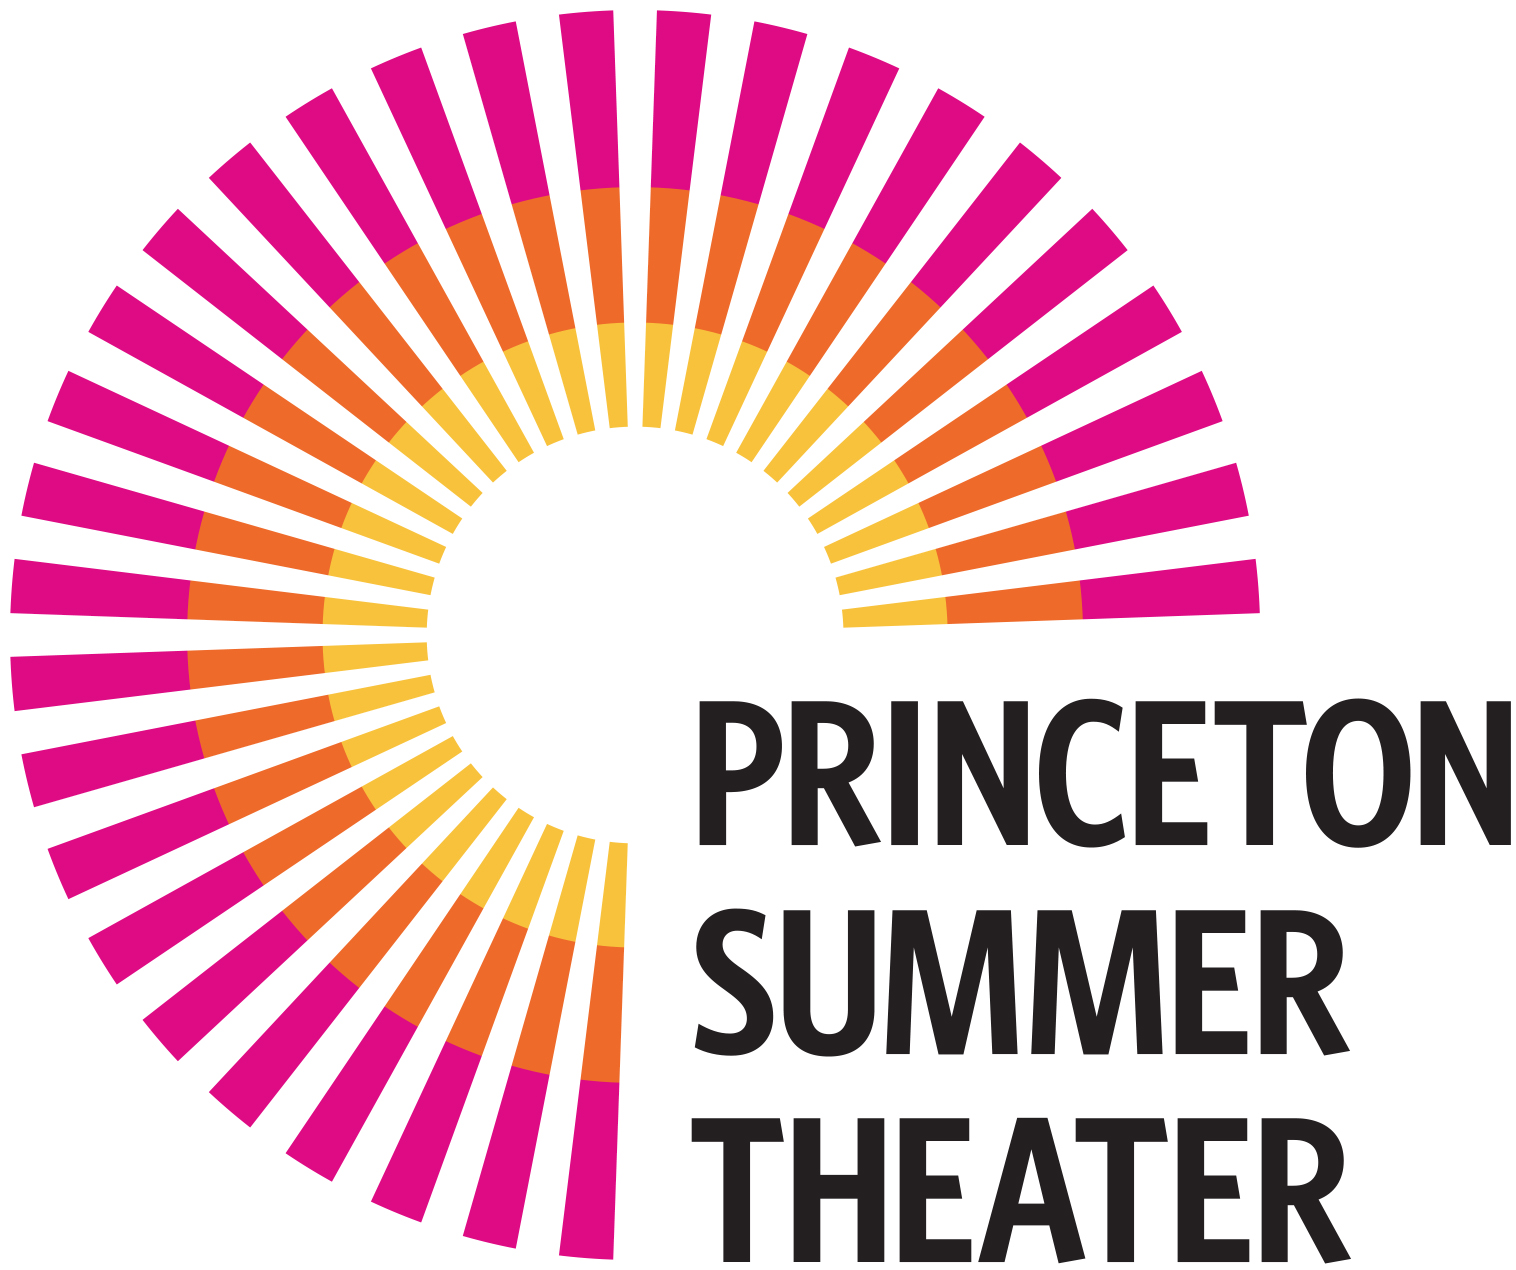 Princeton Summer Theater's Annual Children's Show: The Owl and the Pussycat